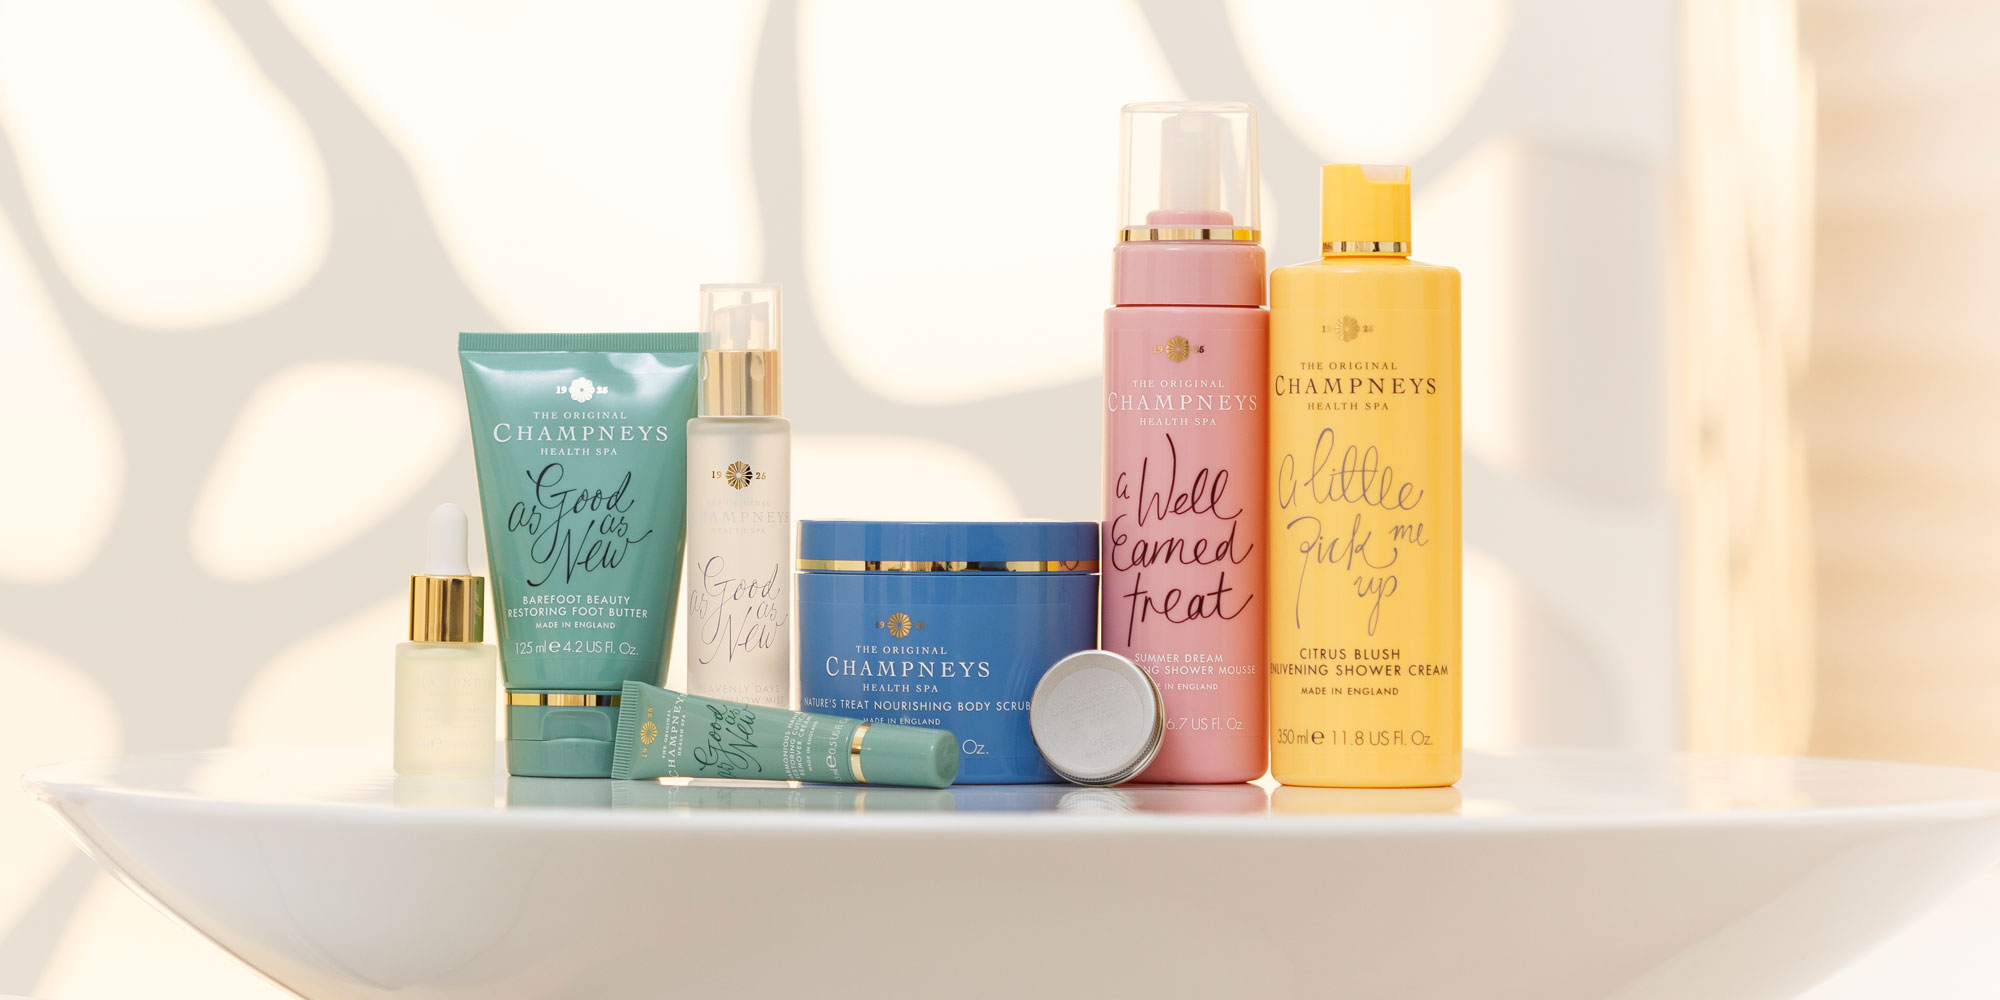 Champneys Products